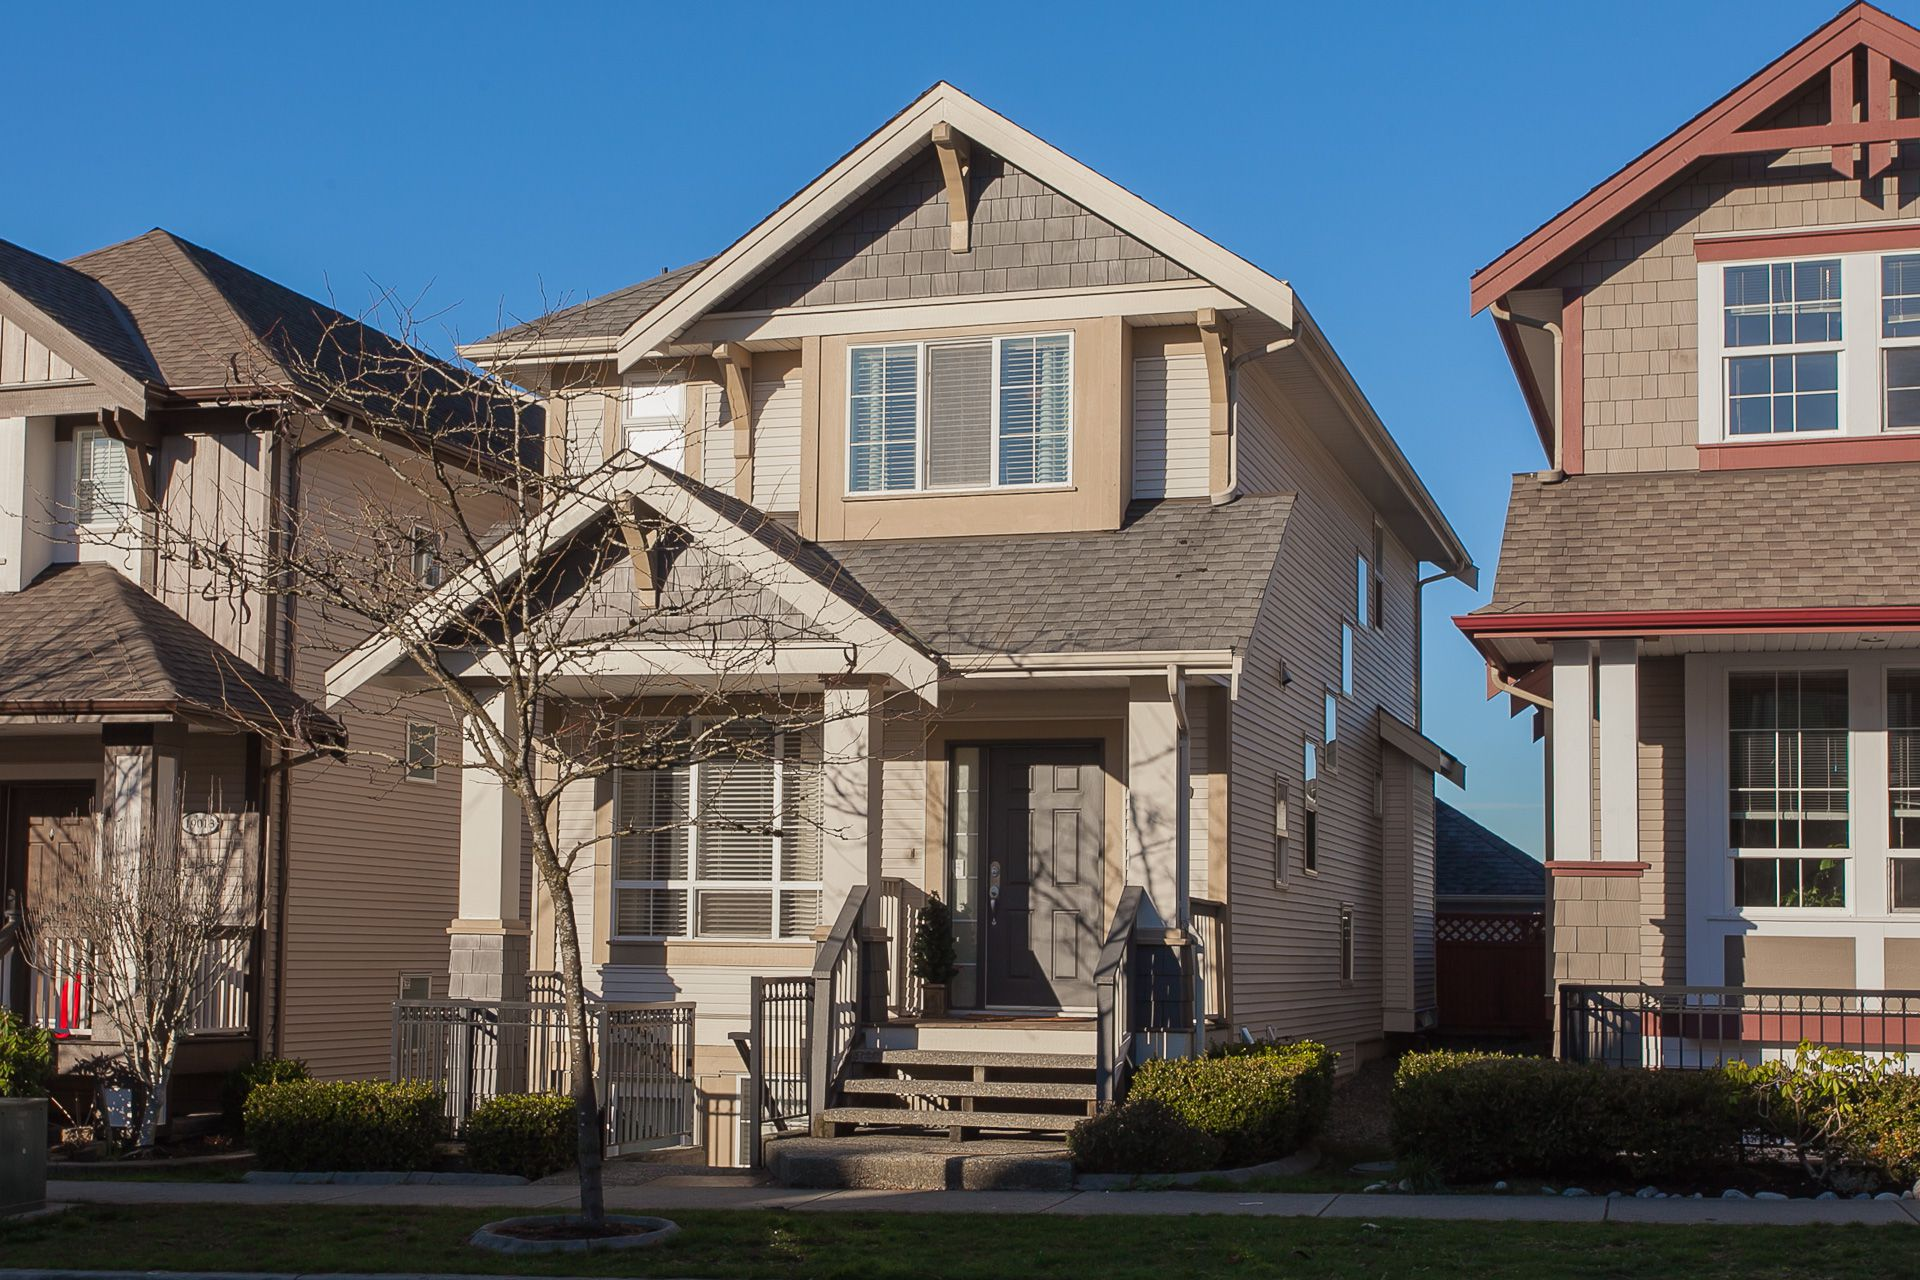 Quality Built by Foxridge Homes & Zoning Allows for Legal Suite or Commercial Space in Basement.